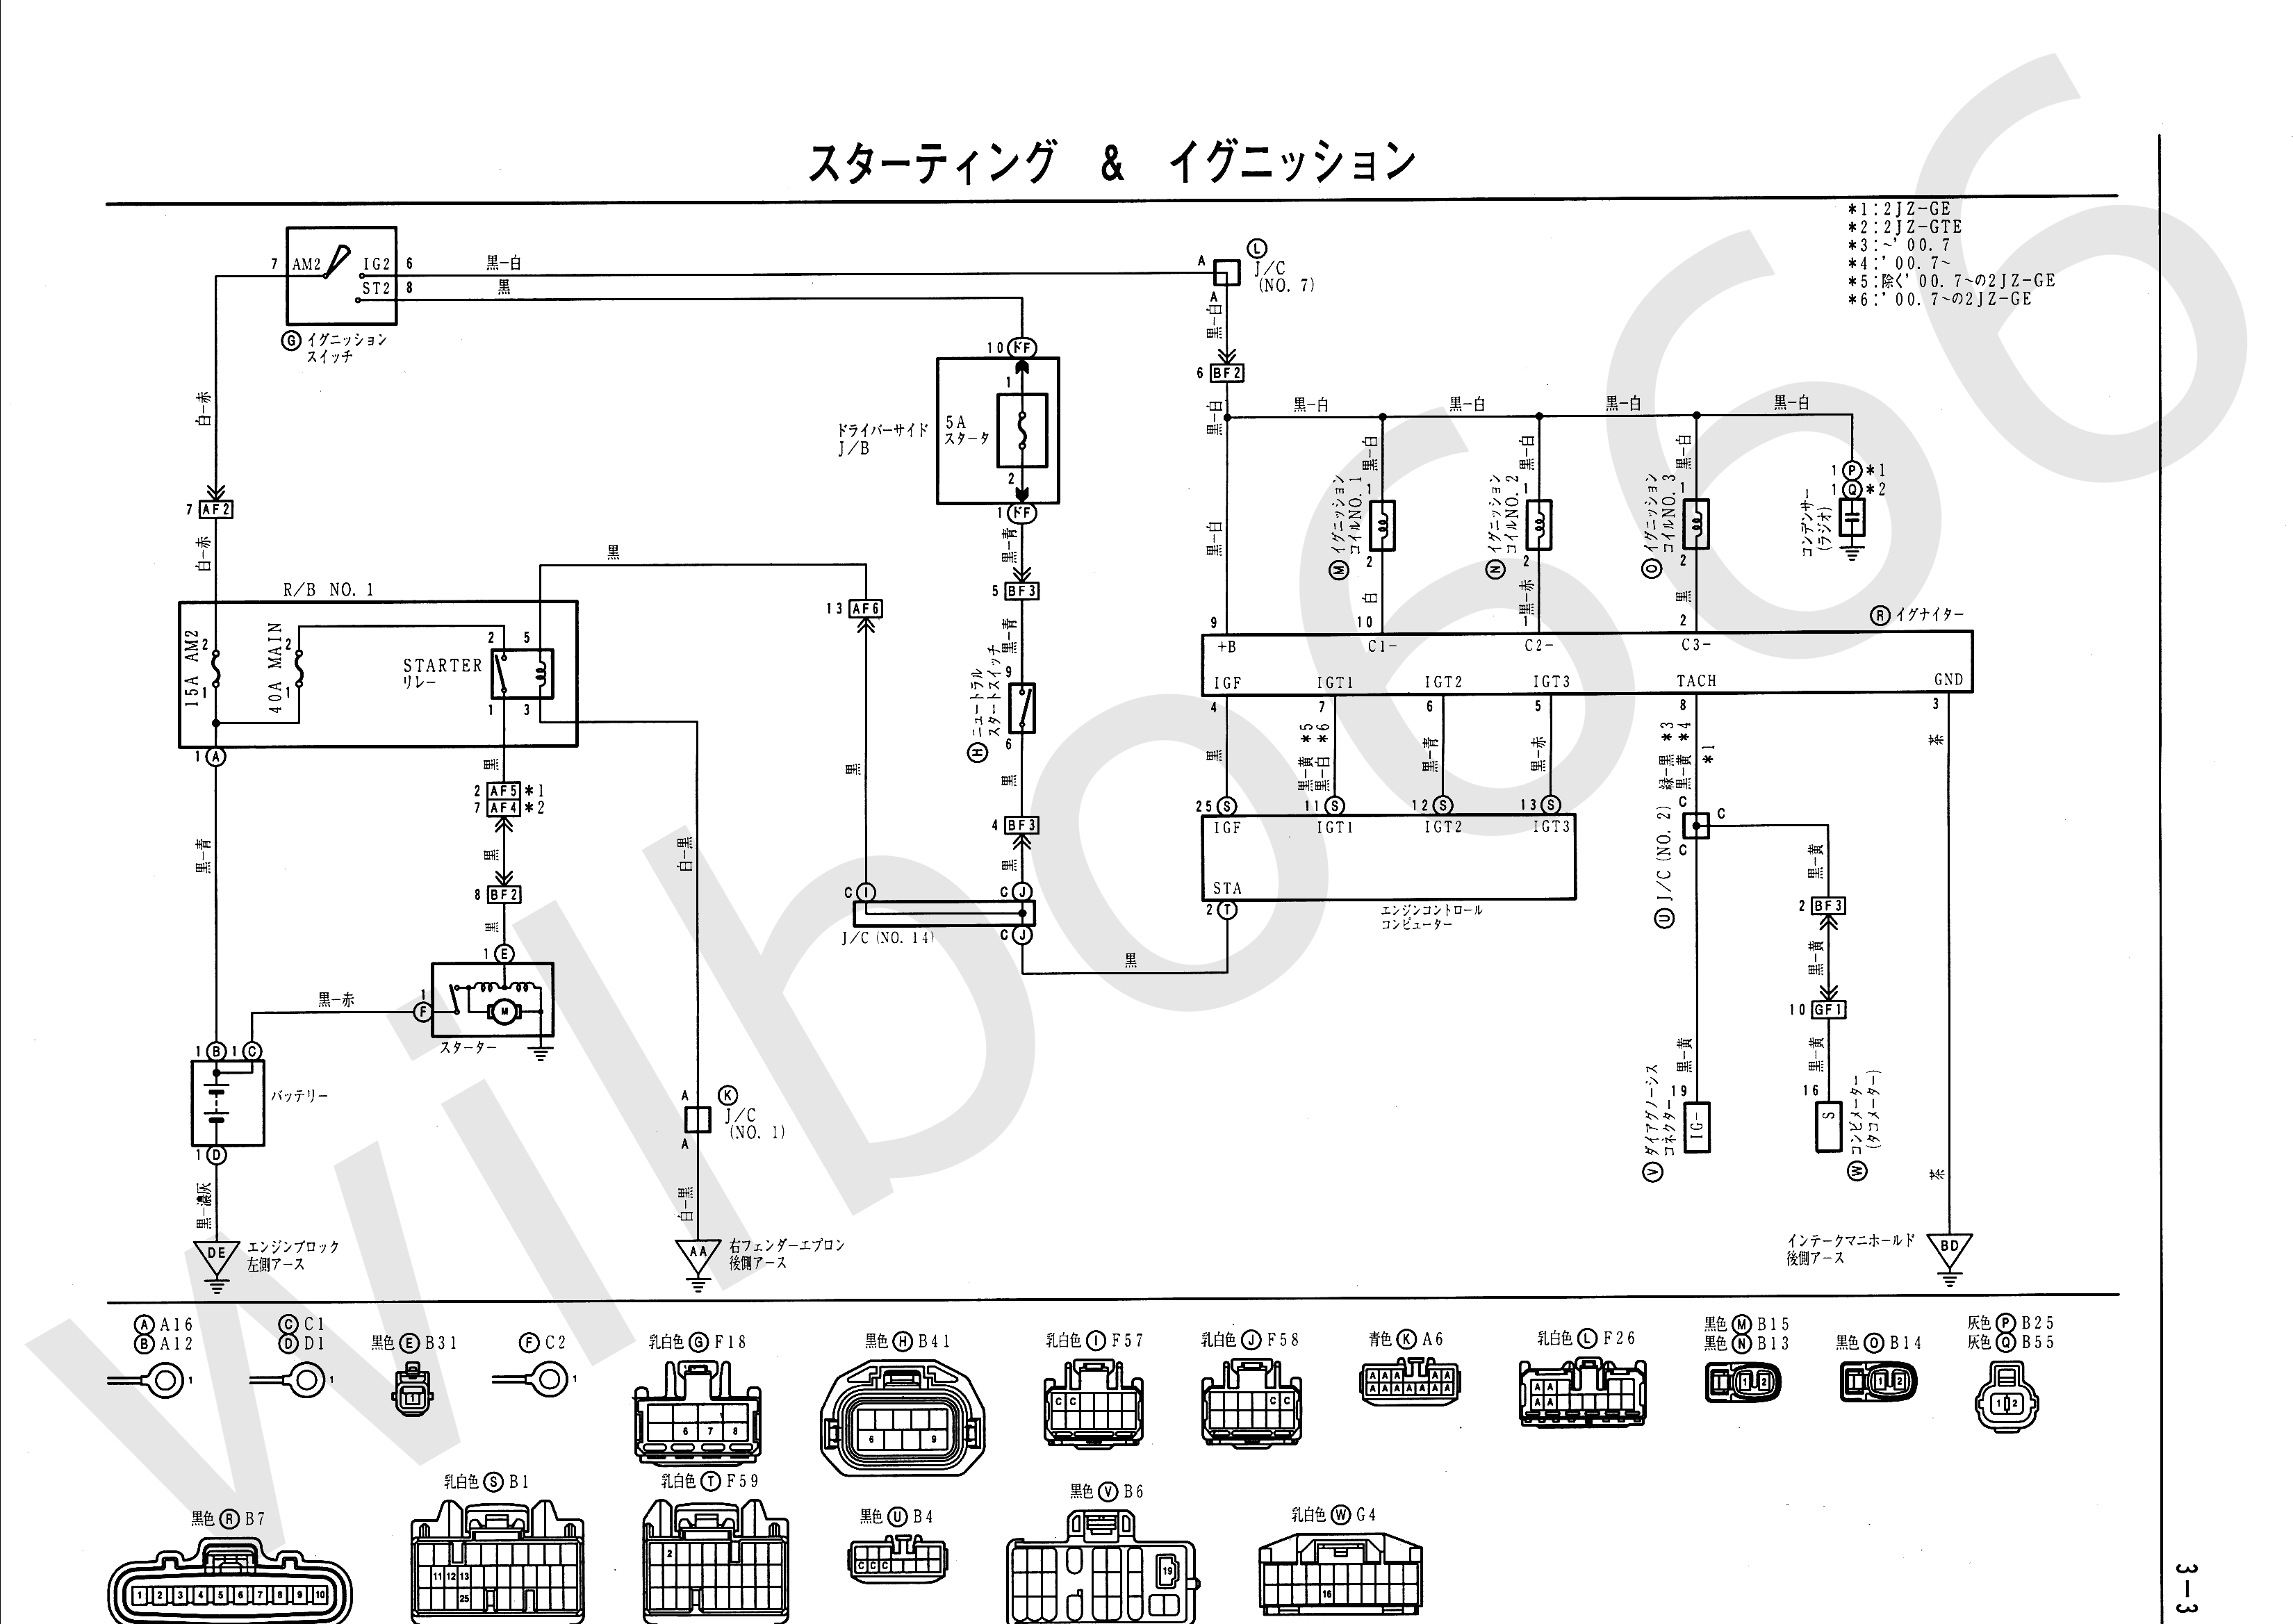 Wilbo666 / 2Jz-Gte Vvti Jzs161 Aristo Engine Wiring - Pressure Switch Wiring Diagram